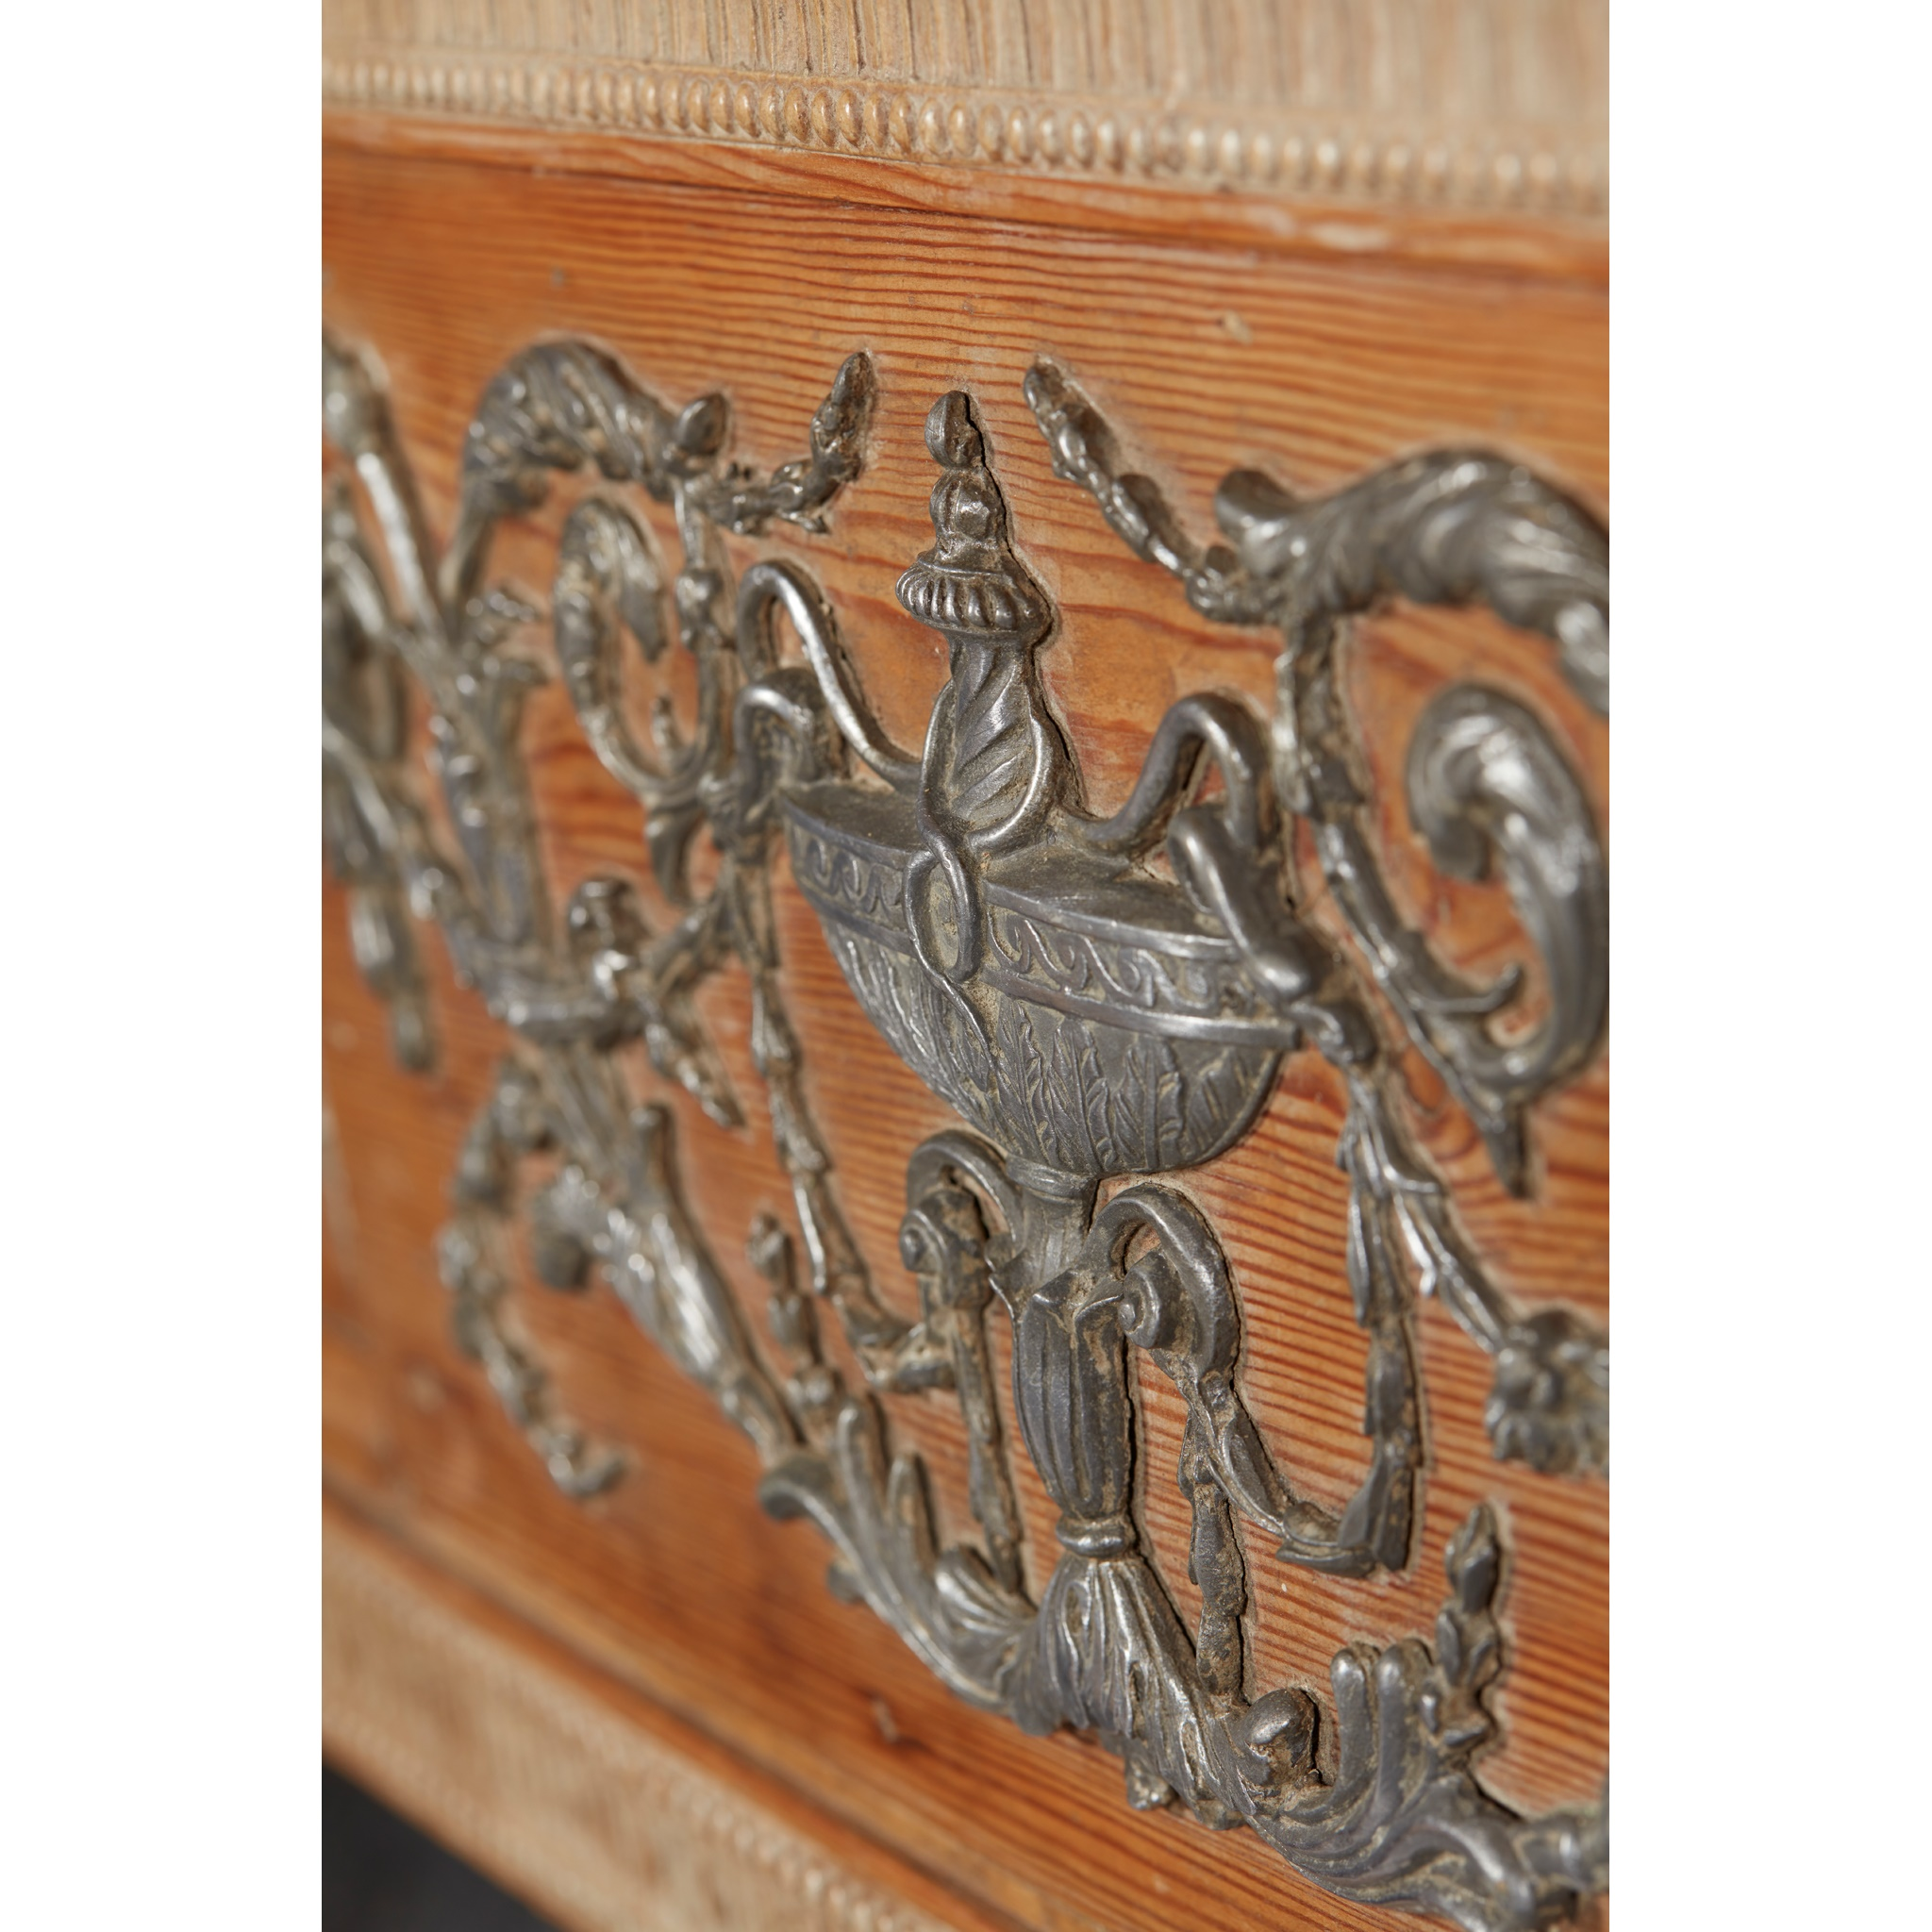 RARE GEORGE III PEWTER AND GESSO MOUNTED FIRE SURROUND 18TH CENTURY - Image 7 of 7